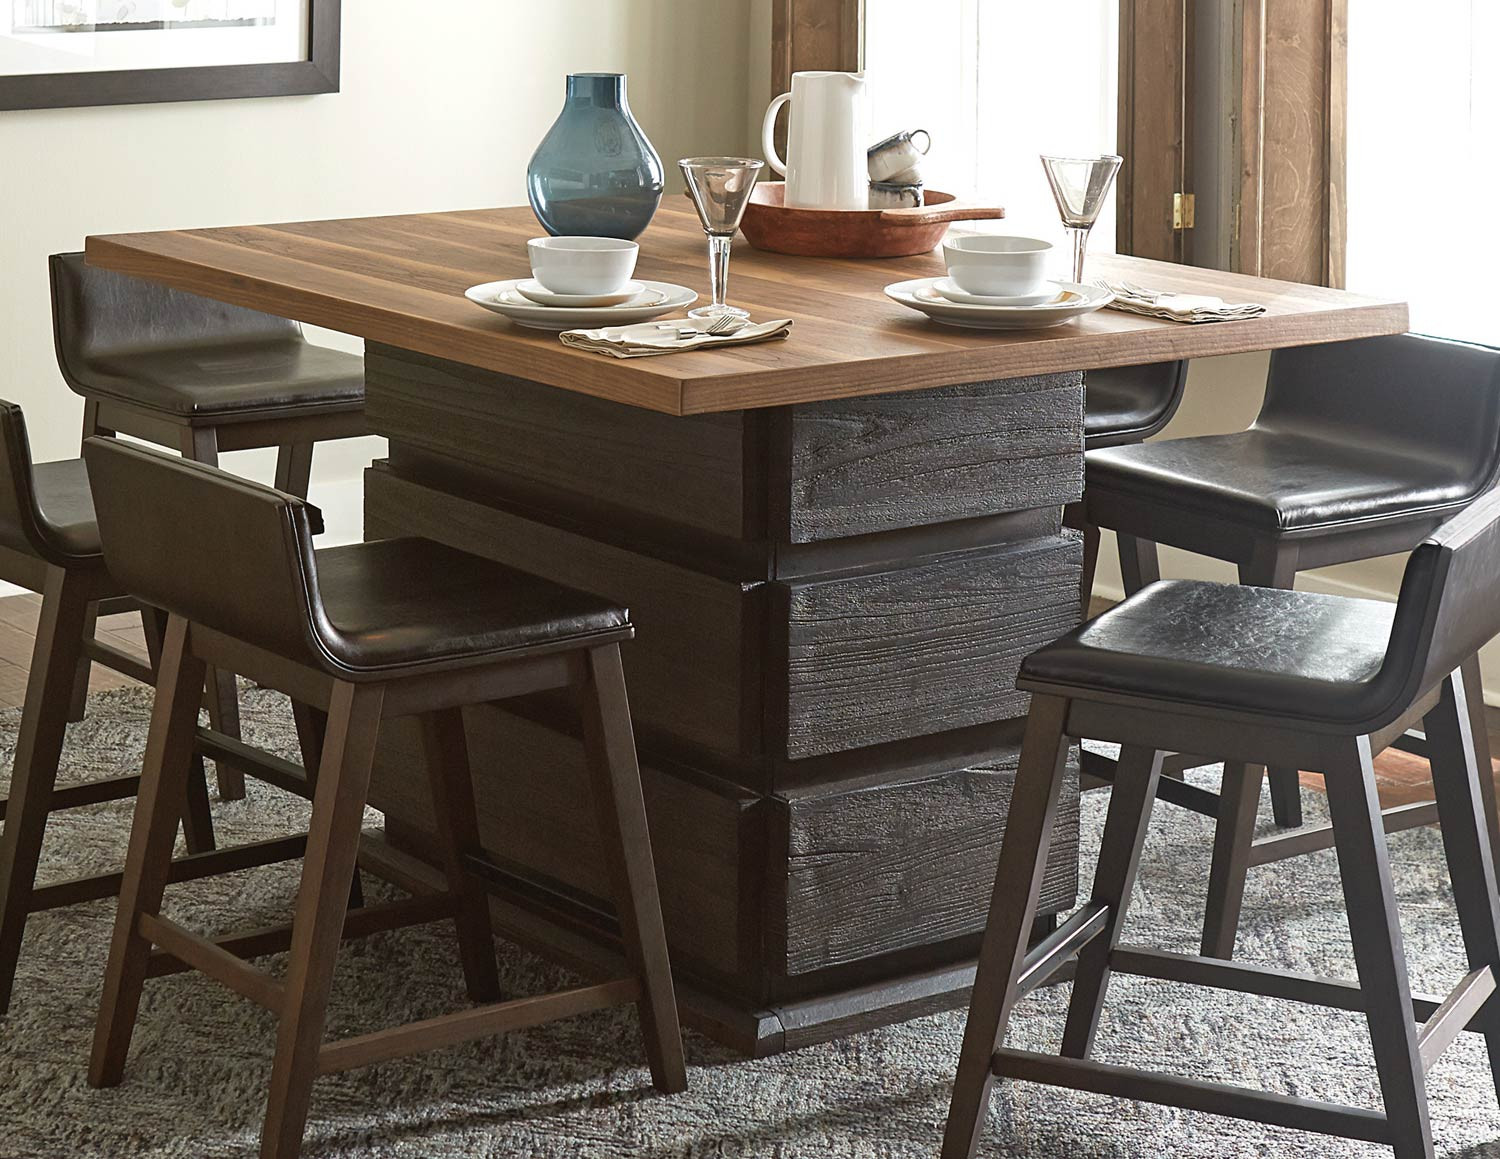 Best ideas about Bar Height Dining Table . Save or Pin Homelegance Rochelle Counter Height Dining Table Dark Now.